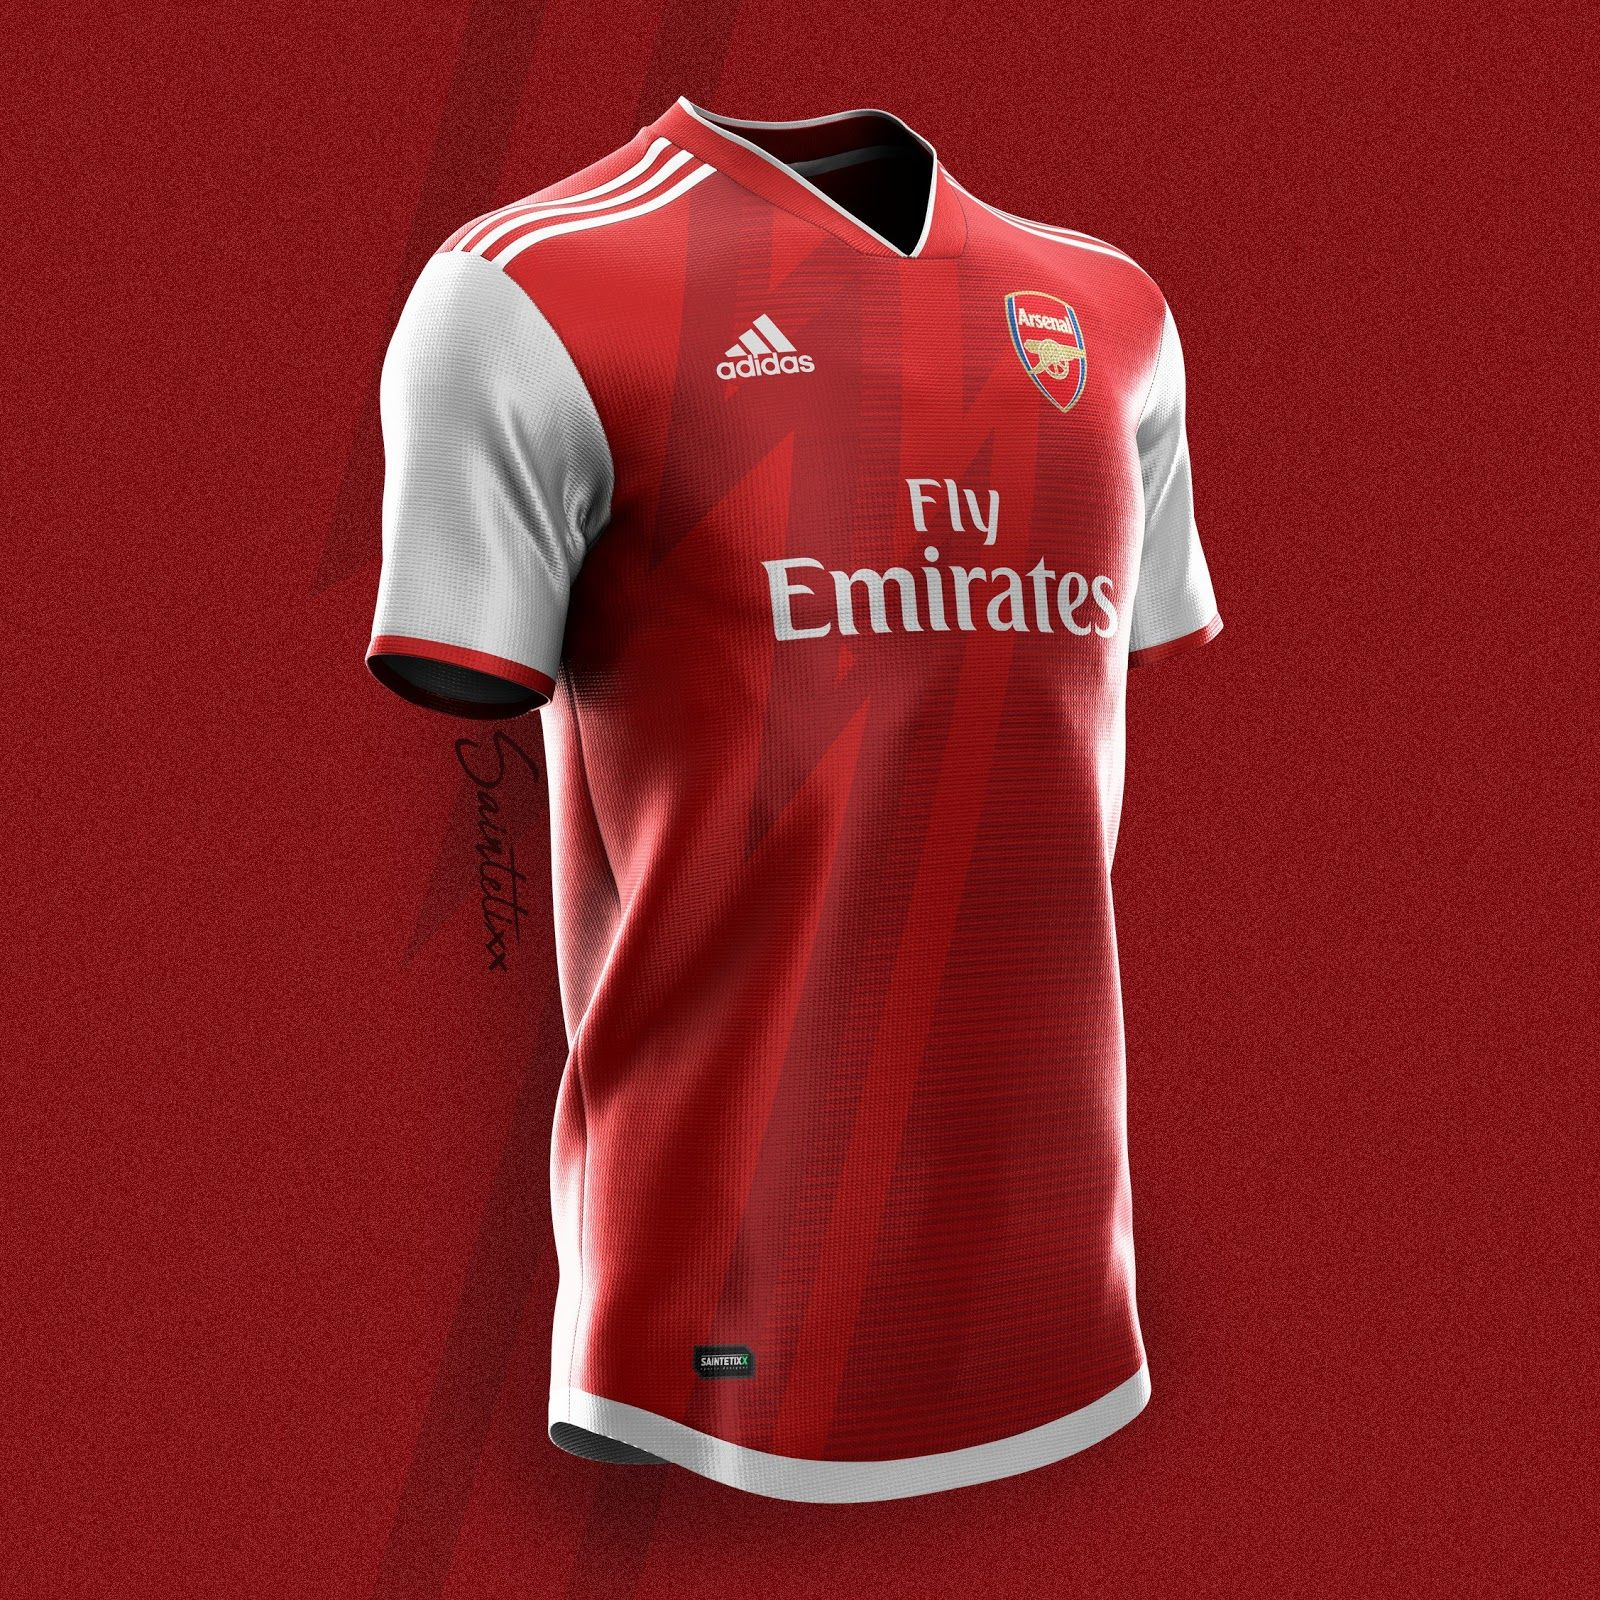 préstamo síndrome El camarero  Adidas Arsenal 19-20 Home, Away & Third Kit Concepts by Saintetixx - Footy  Headlines | Arsenal jersey, Sports jersey design, Arsenal kit